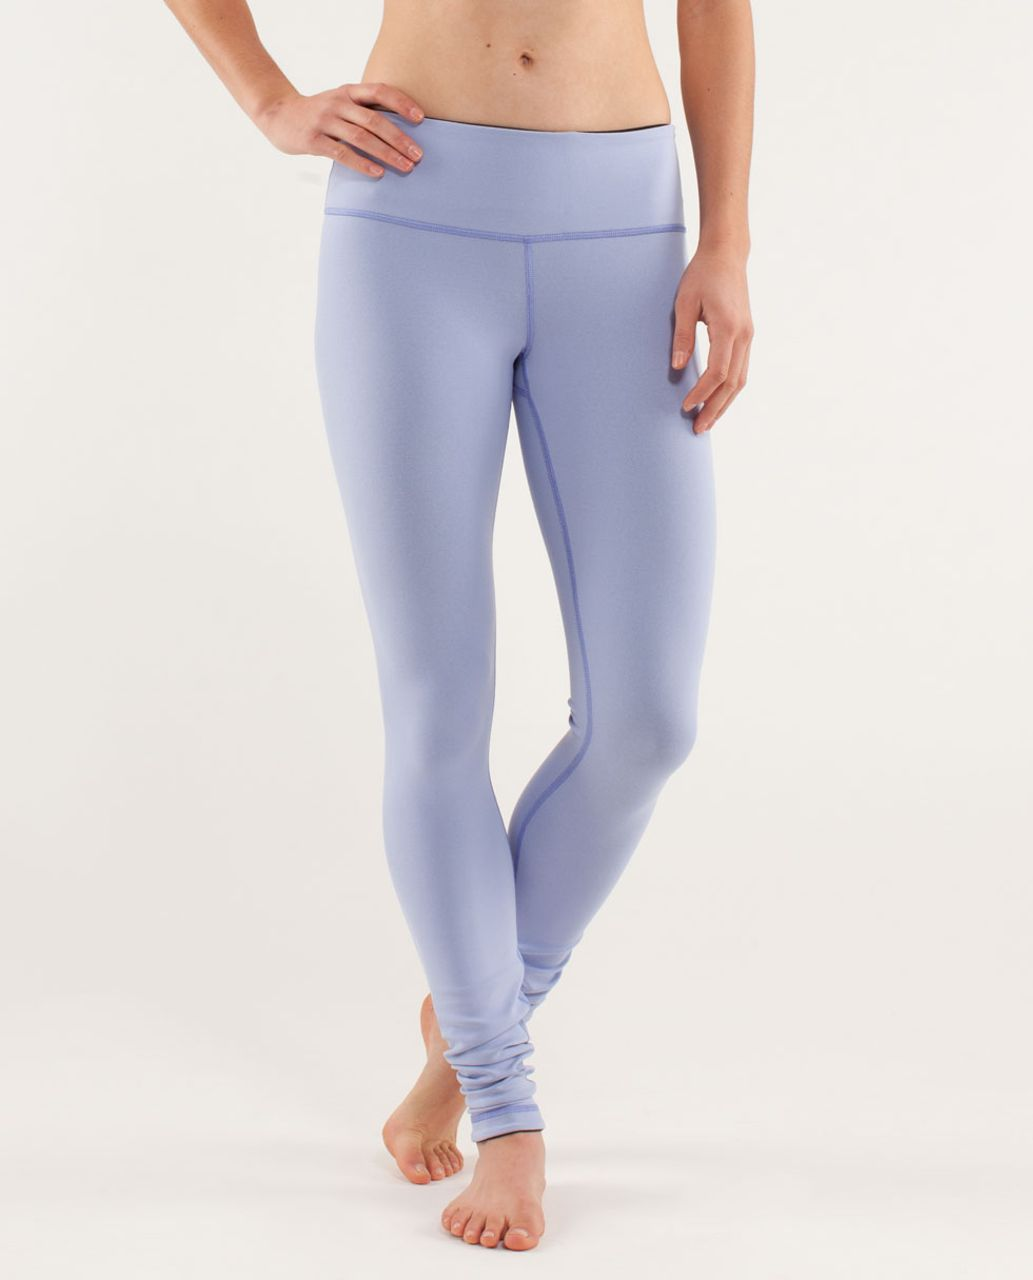 Lululemon Wunder Under Pant *Reversible - Polar Haze / Black